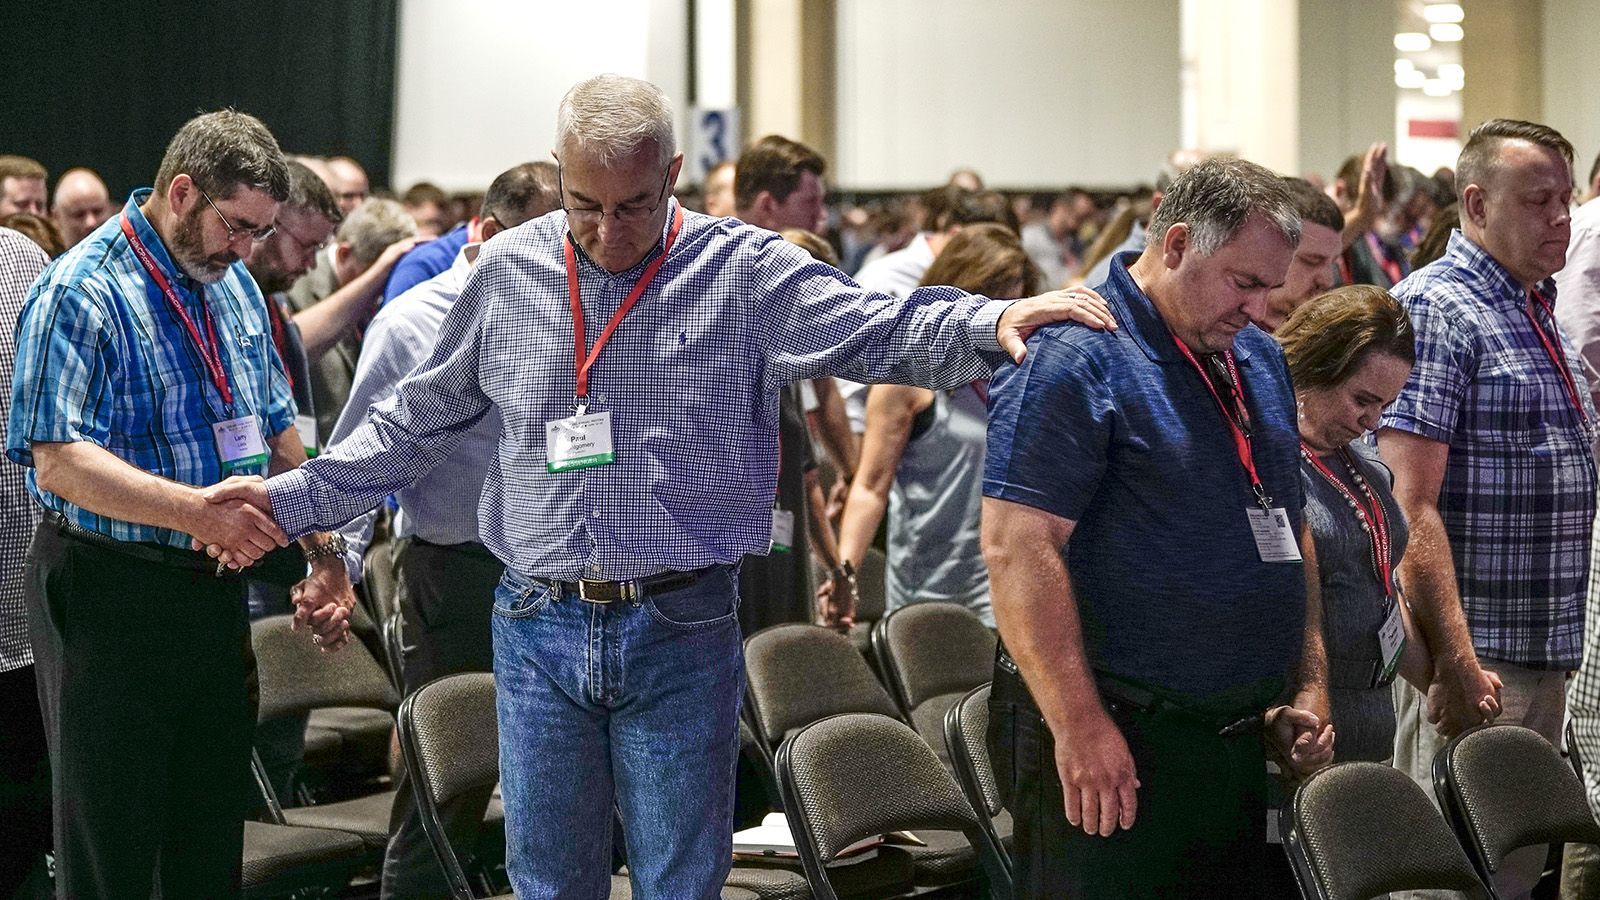 Messengers pray for unity during the first session of the two-day Southern Baptist Convention annual meeting at the Kay Bailey Hutchison Convention Center in Dallas on June 12, 2018. Photo by Adam Covington via Baptist Press